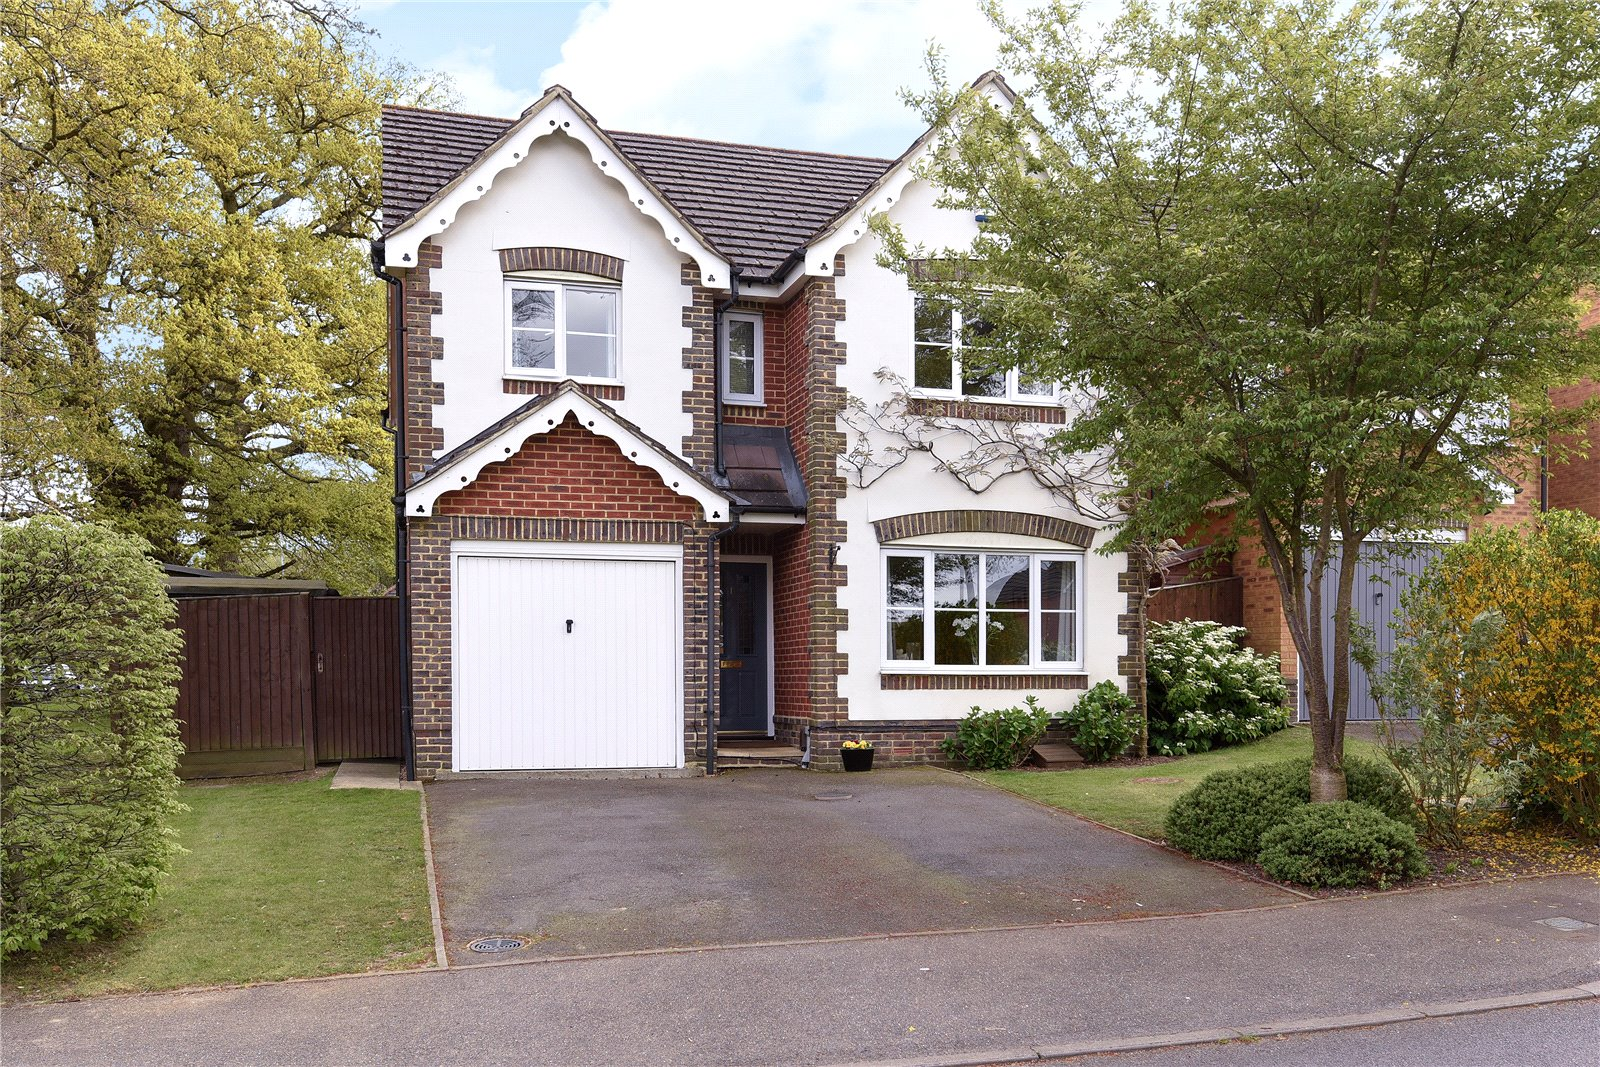 4 Bedrooms Detached House for sale in Lyon Oaks, Warfield, Berkshire, RG42